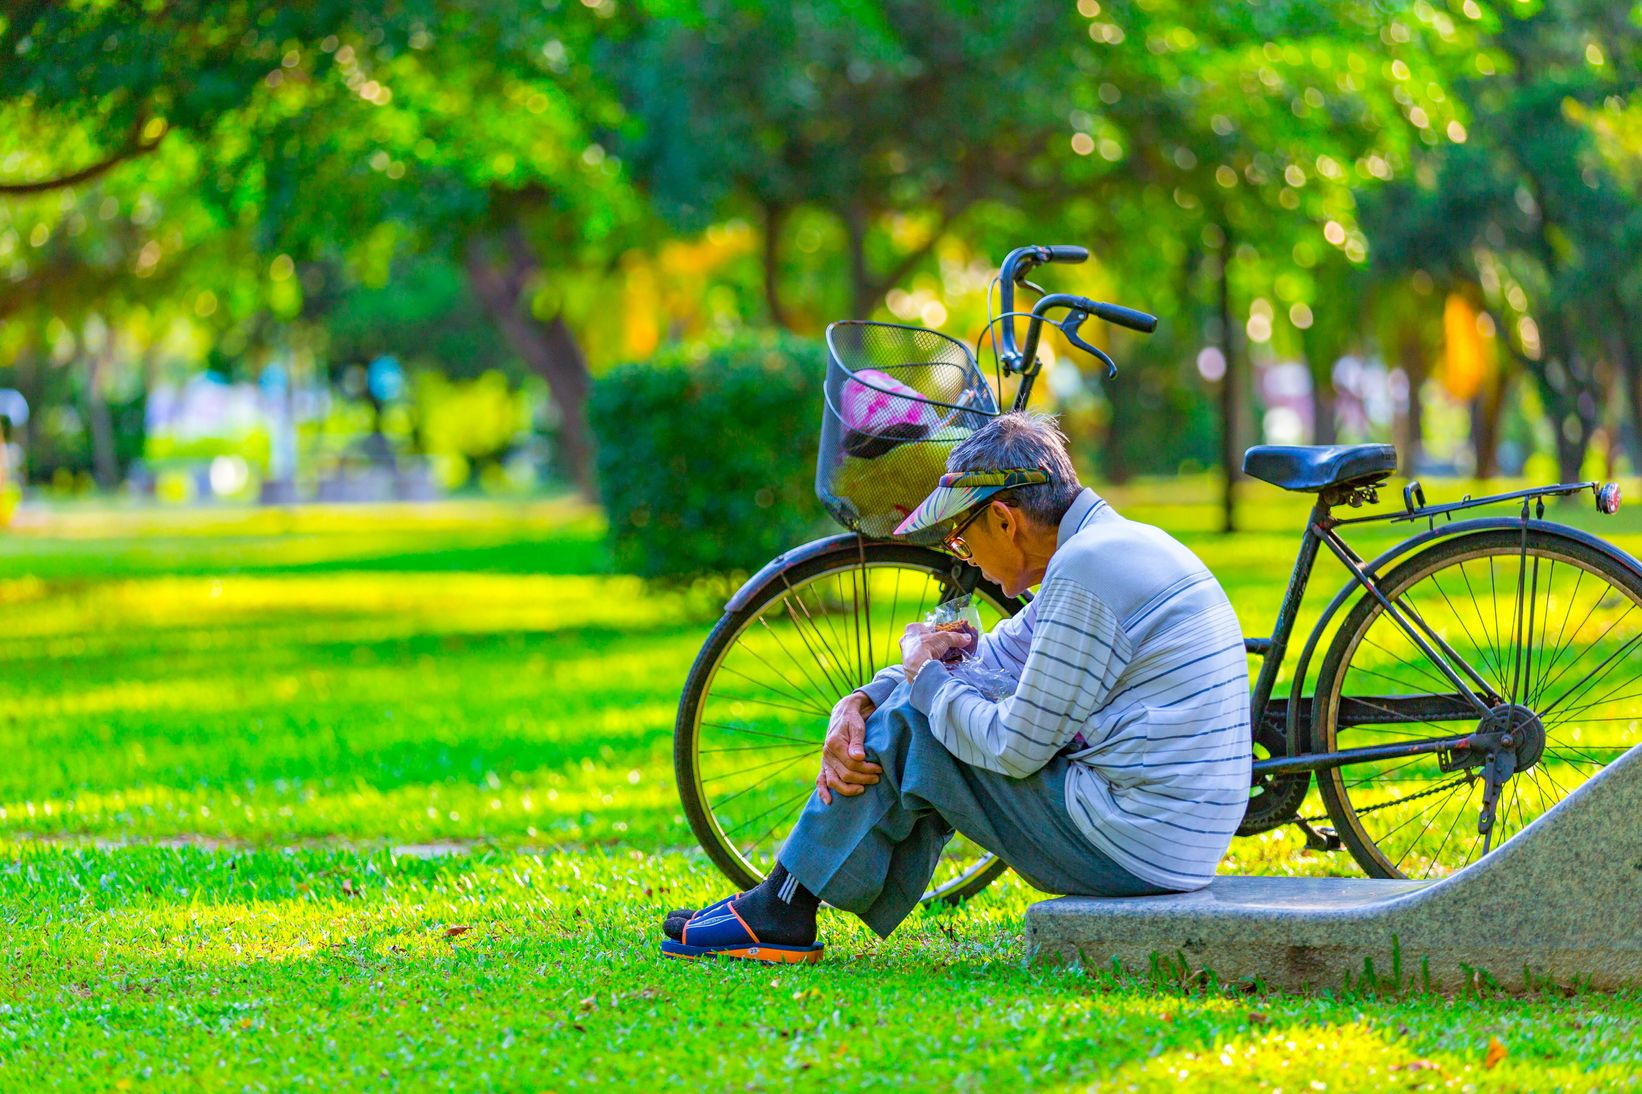 An old man with his bicycle, sitting on a concrete step out in a green park with green trees